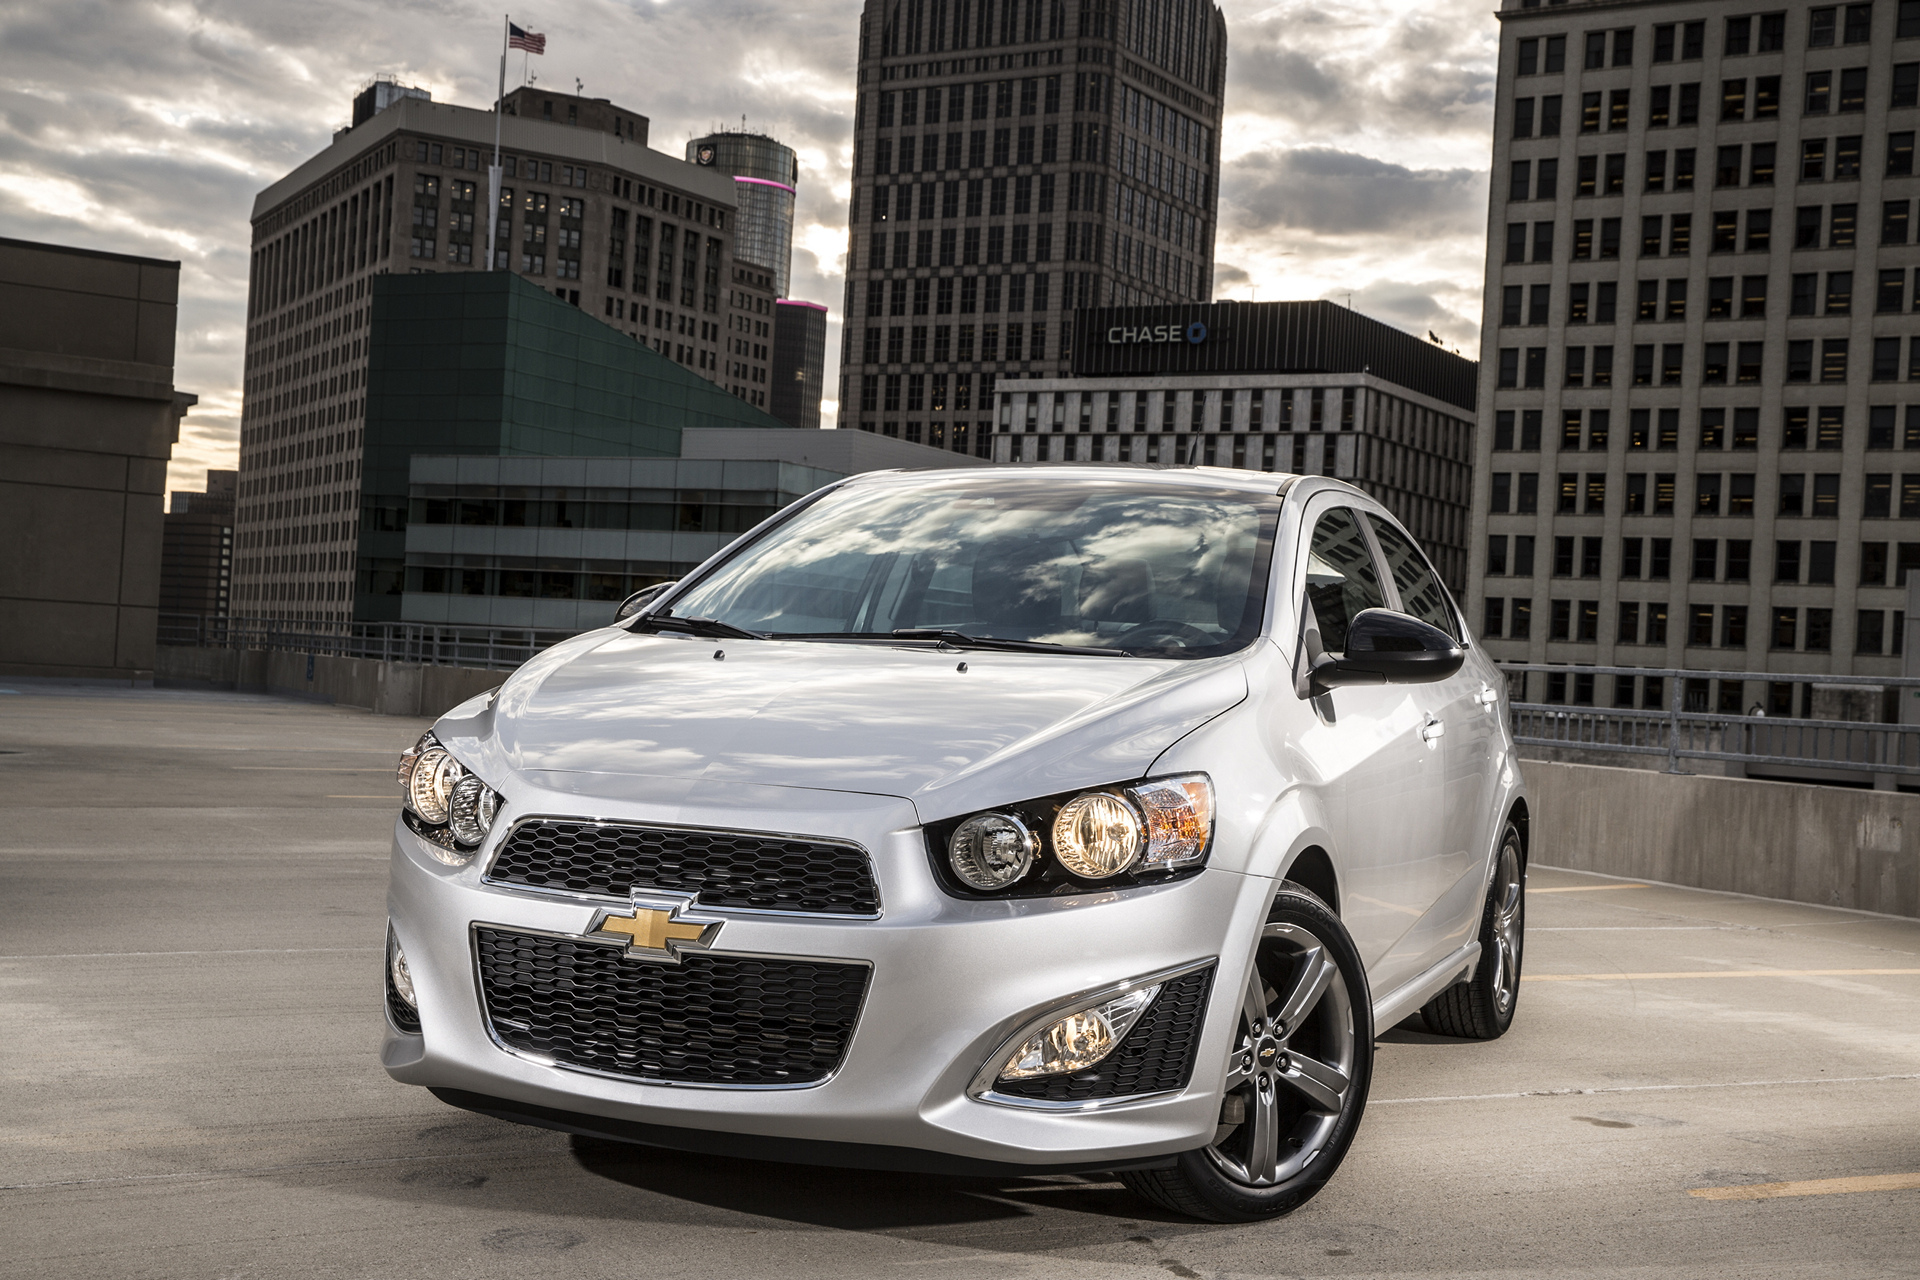 Chevrolet Sonic Repair Manual: Remote Vehicle Speed Limiting Description and Operation